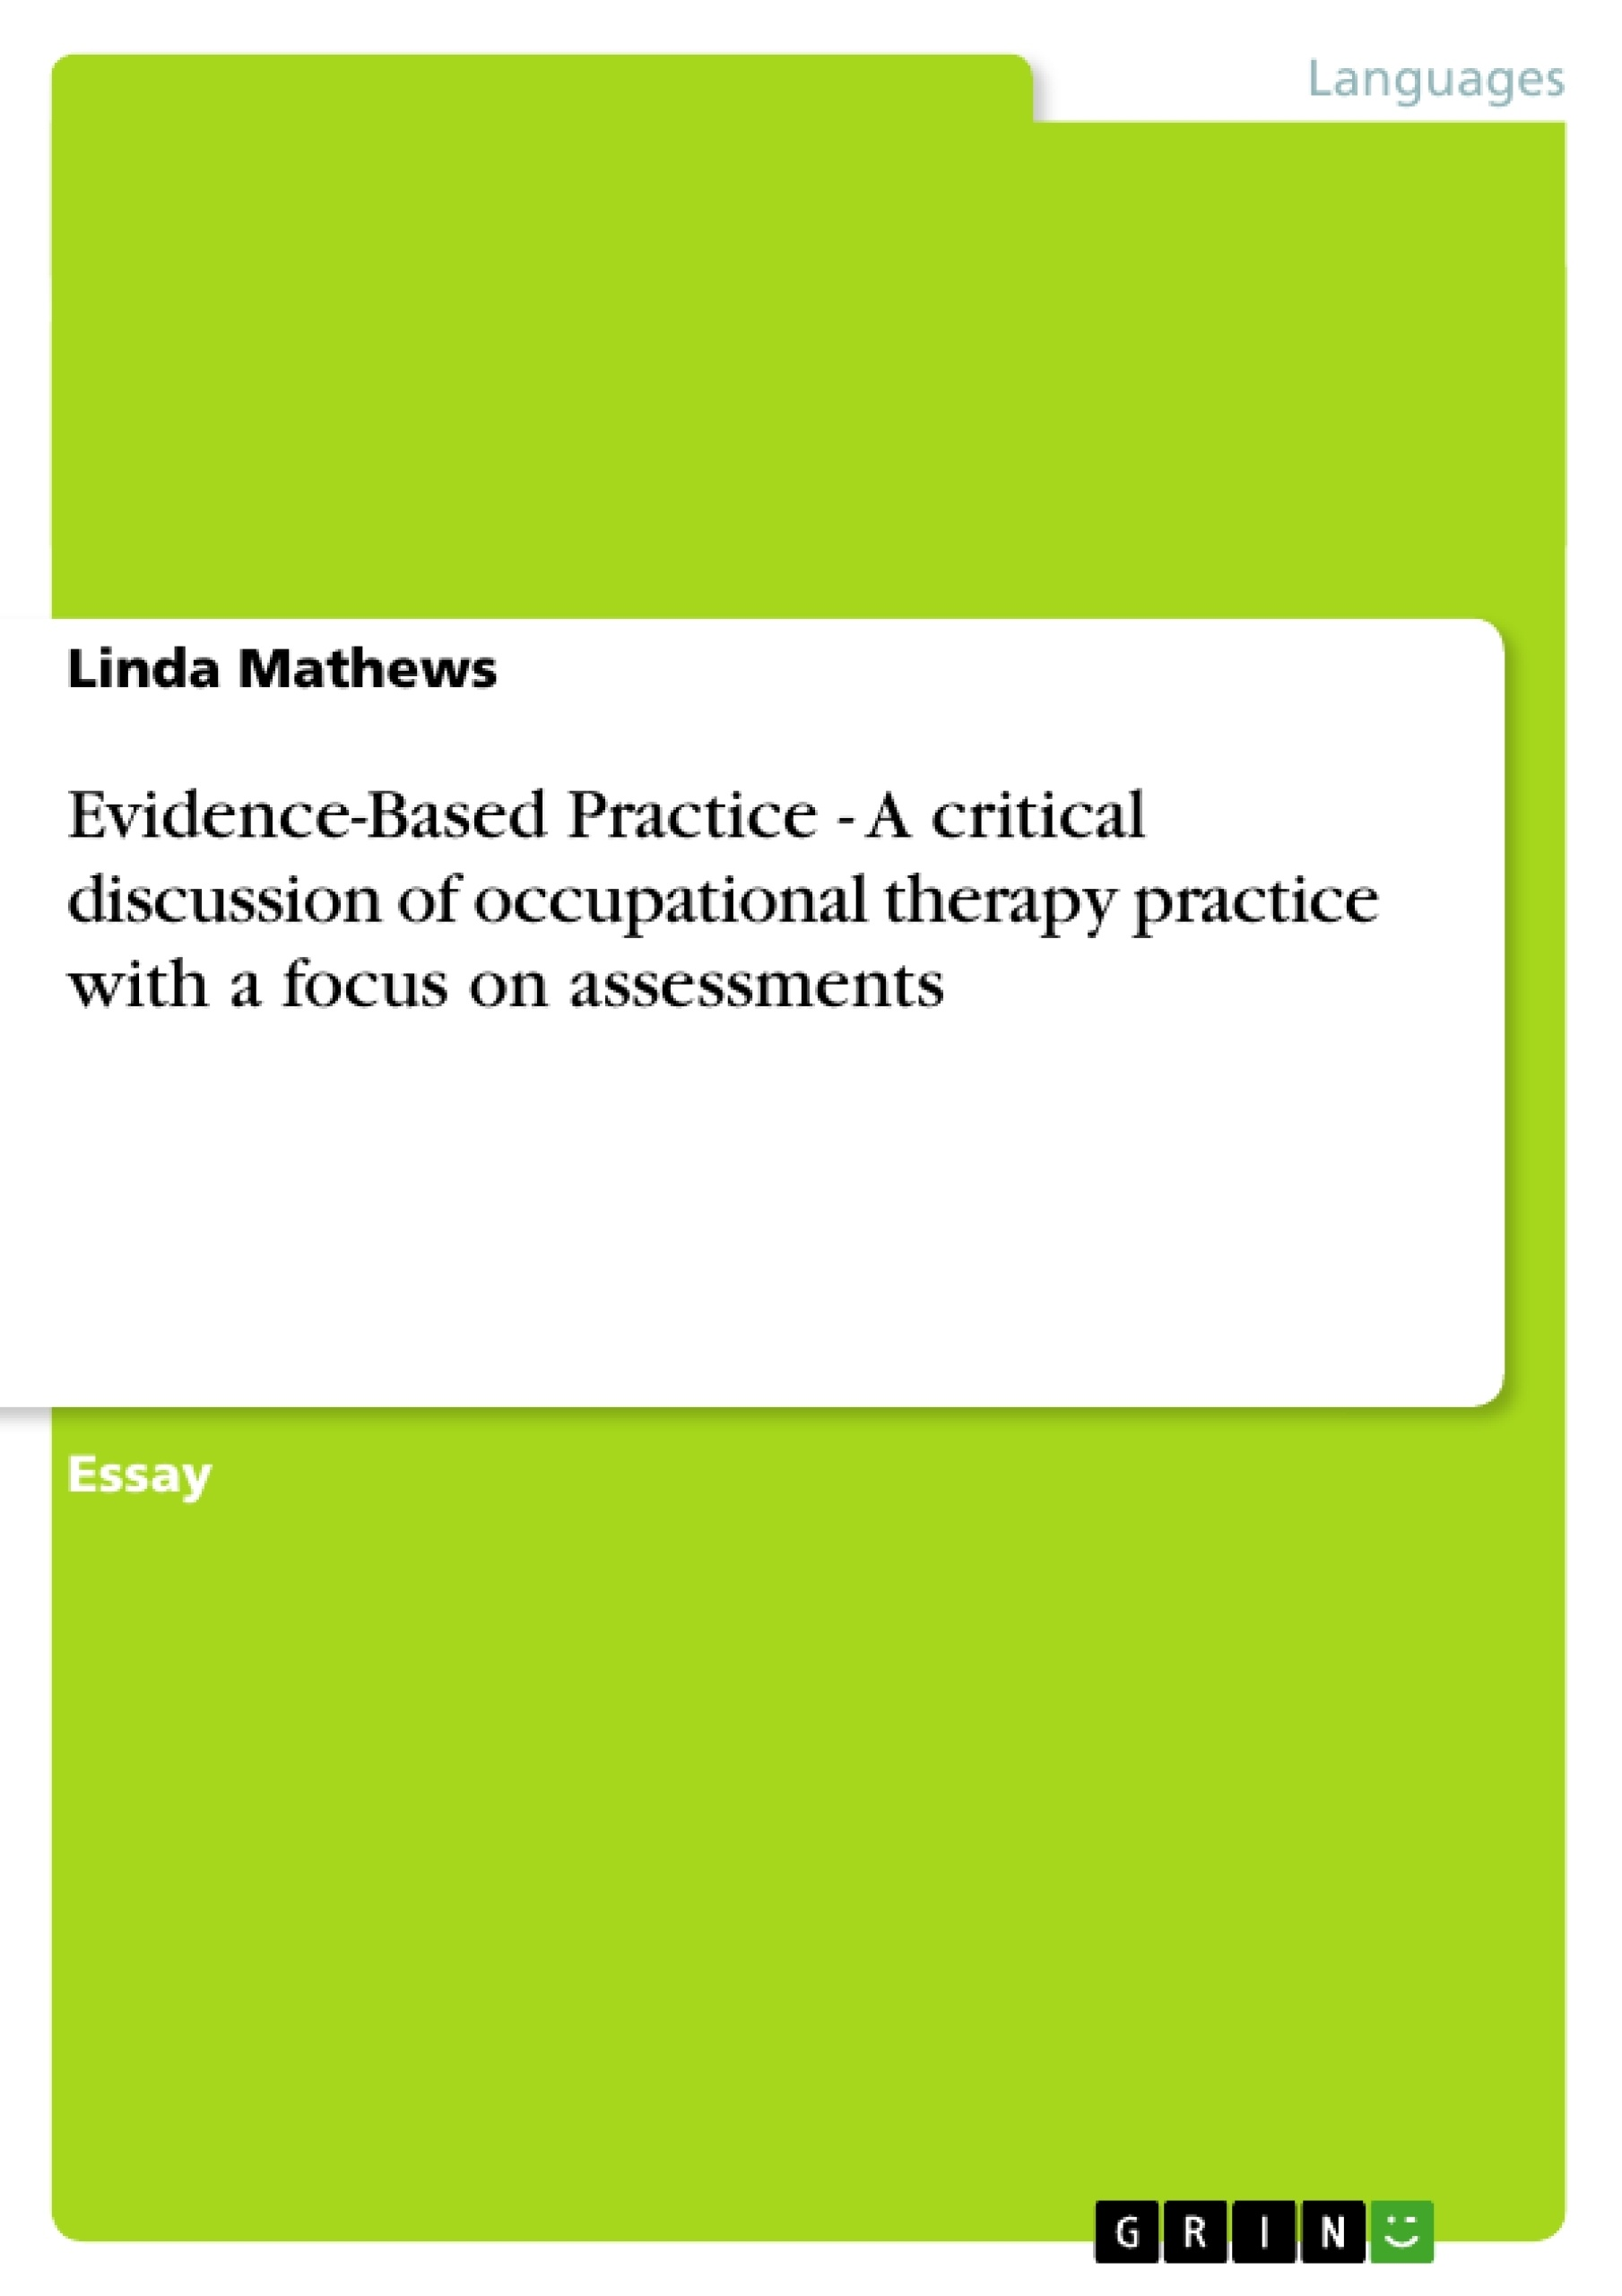 Title: Evidence-Based Practice  -  A critical discussion of occupational therapy practice with a focus on assessments